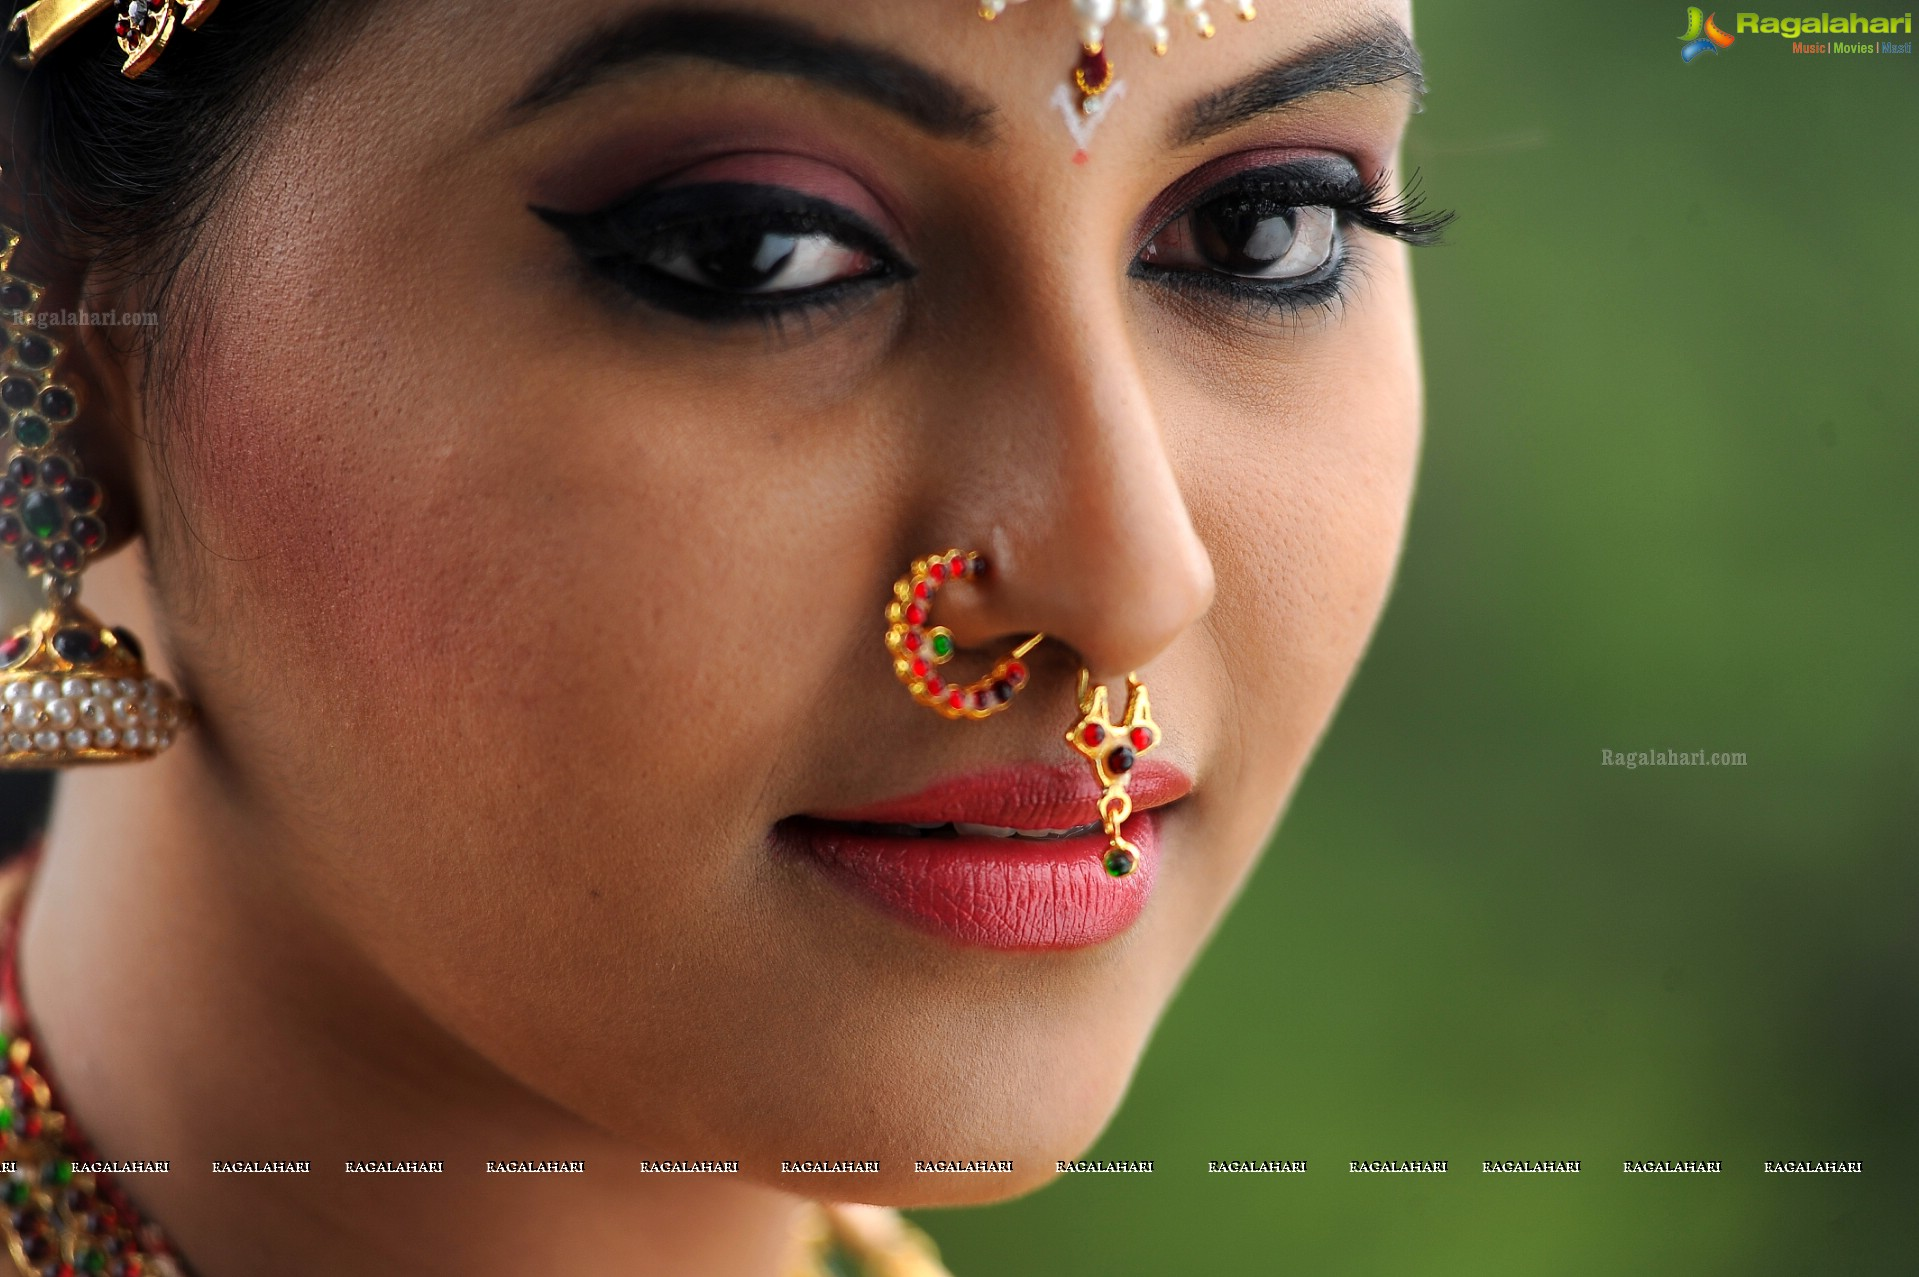 anjali (high definition) image 36 | tollywood actress images,images